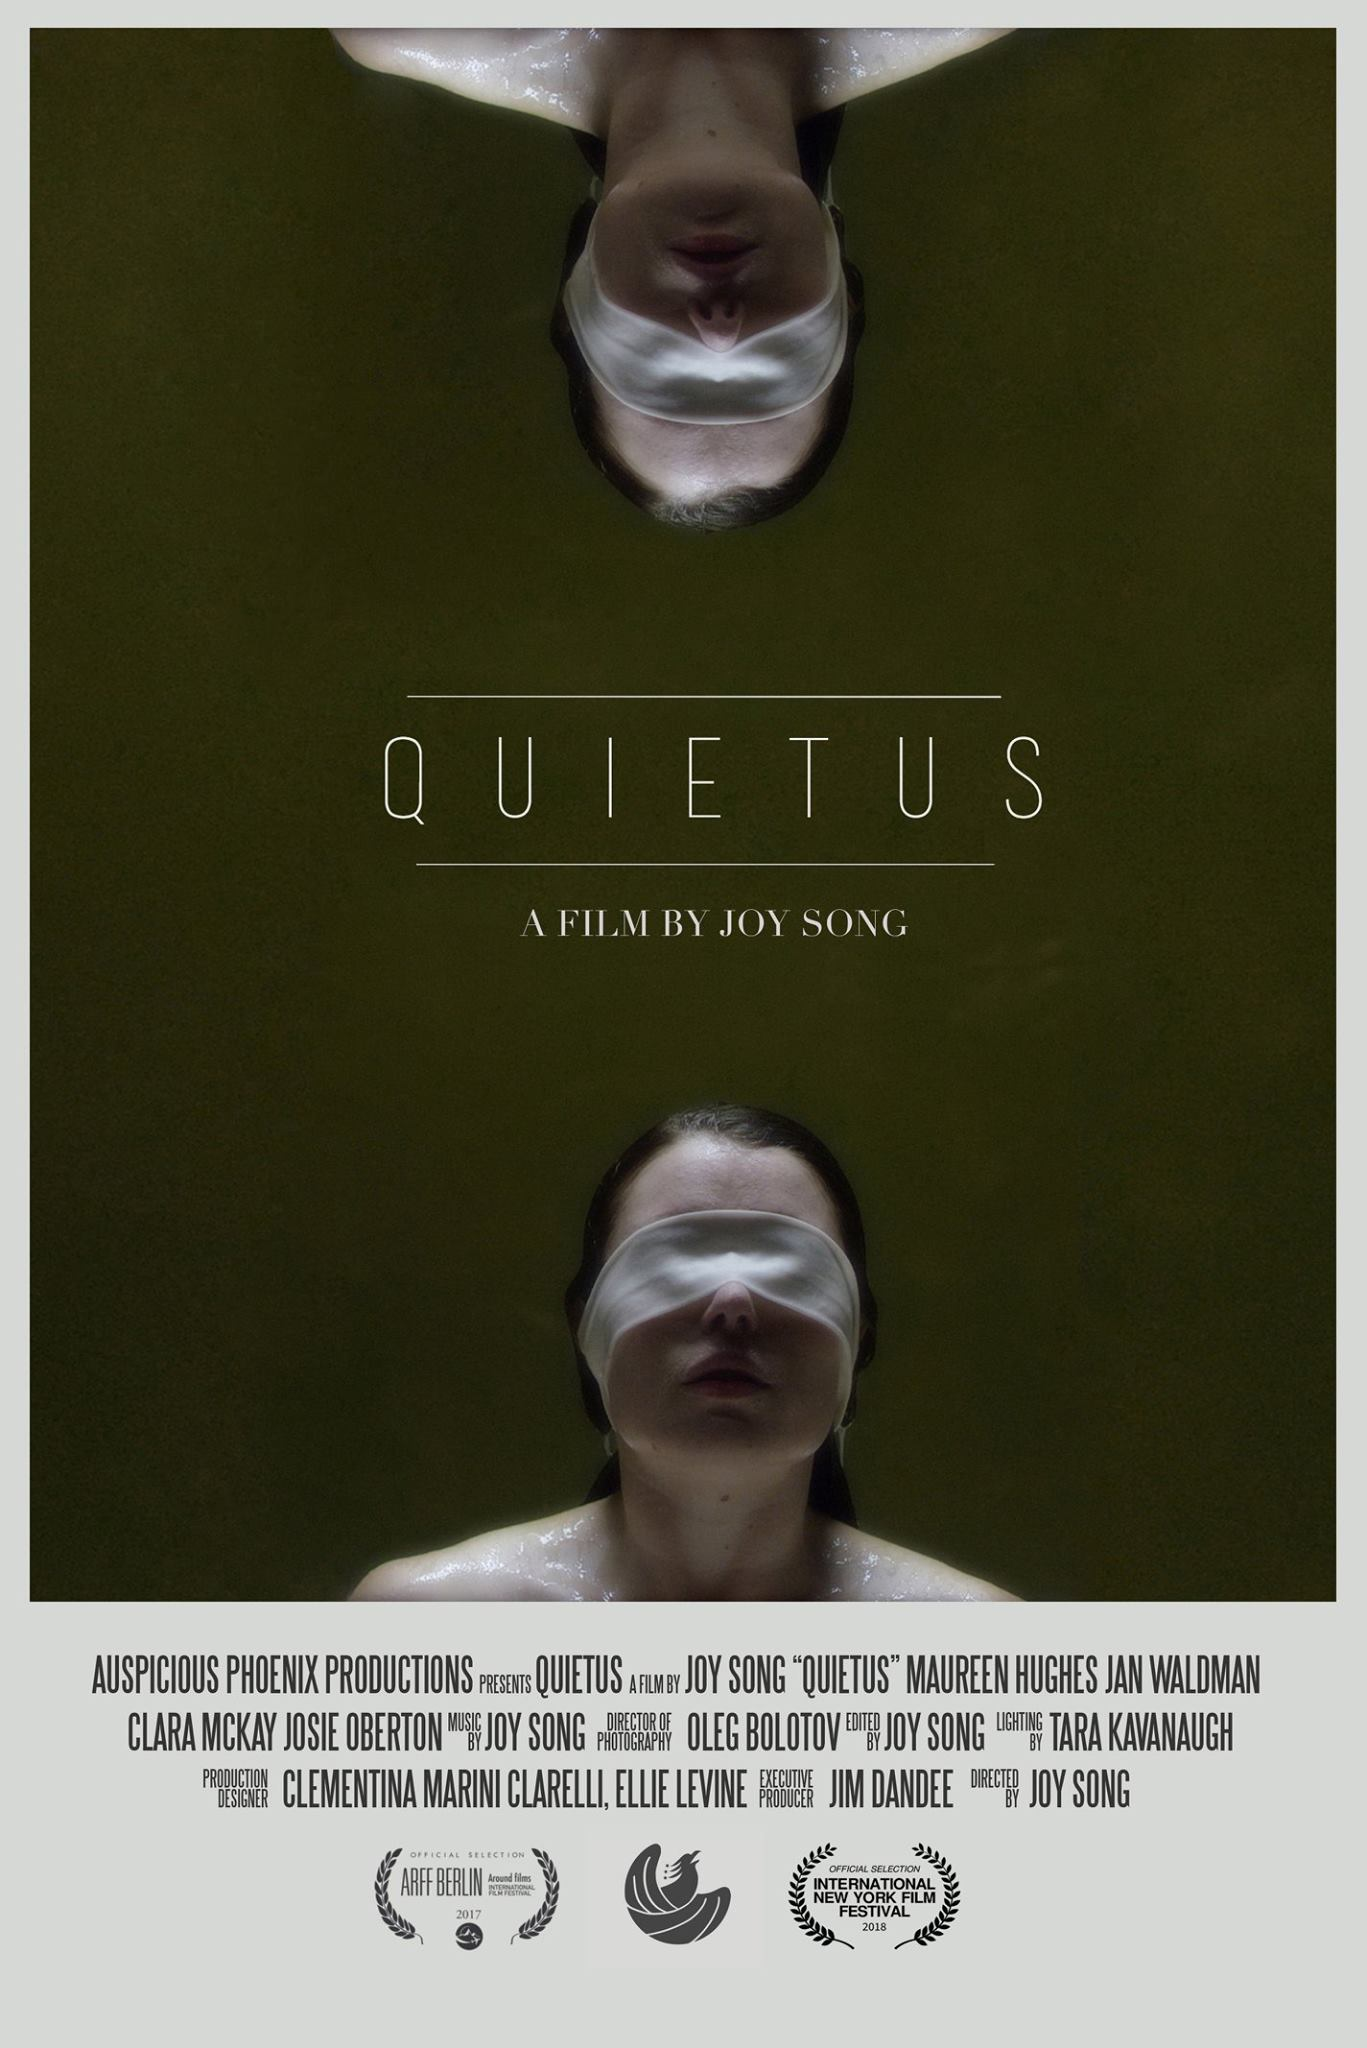 Auspicious Phoenix Productions released a new poster for QUIETUS, directed by Joy Song. (Auspicious Phoenix Productions)